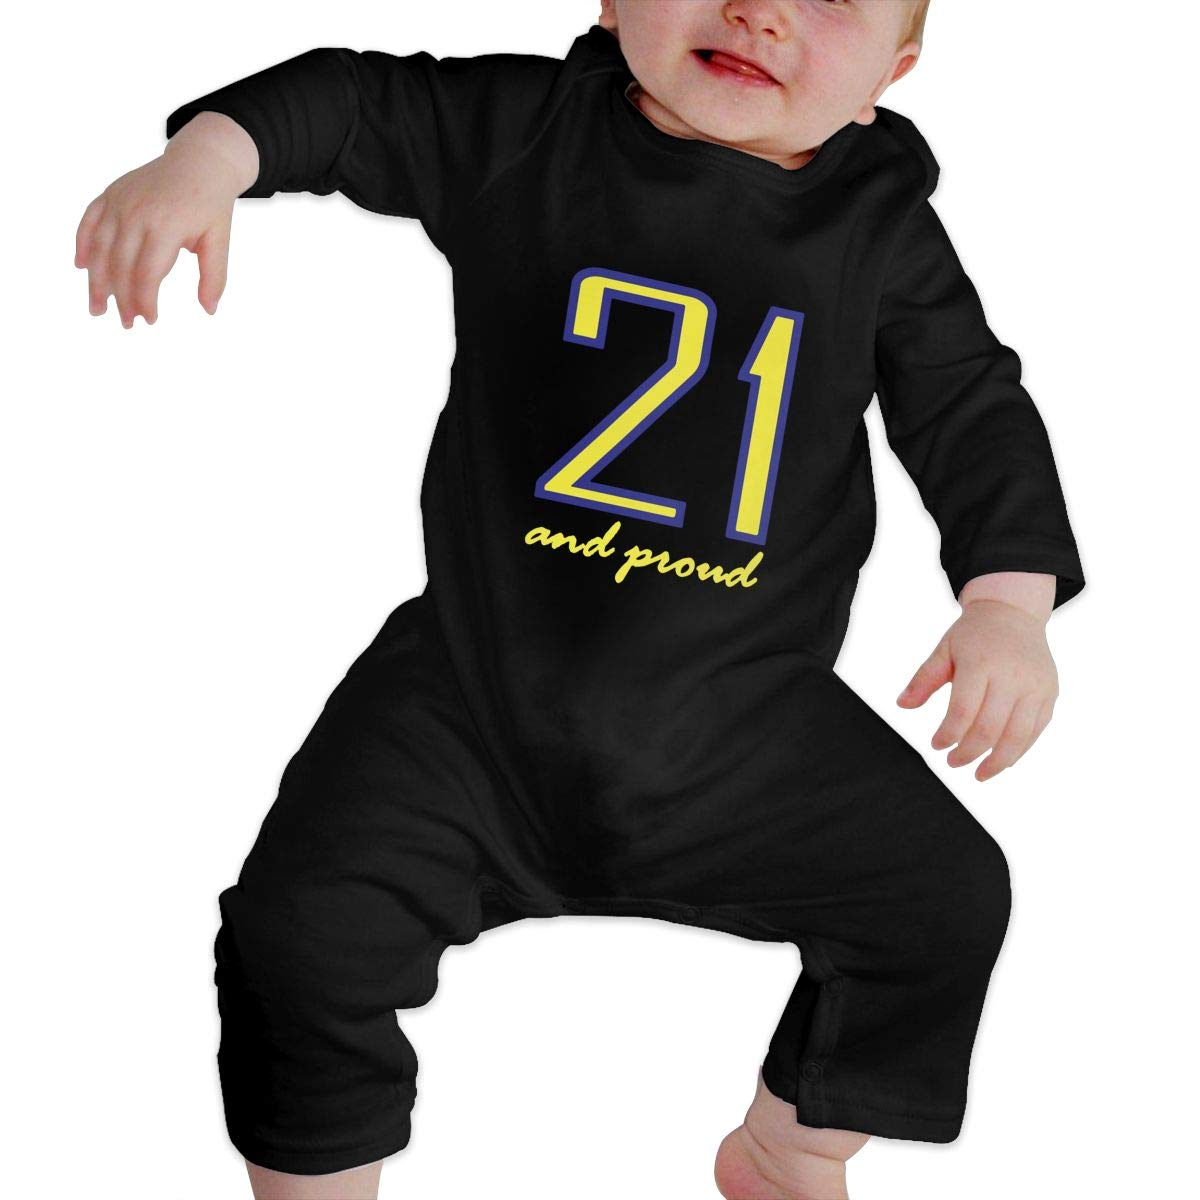 Suit 6-24 Months Q64 Baby Boys Round Collar World Down Syndrome Day Long Sleeve Playsuit 100/% Cotton